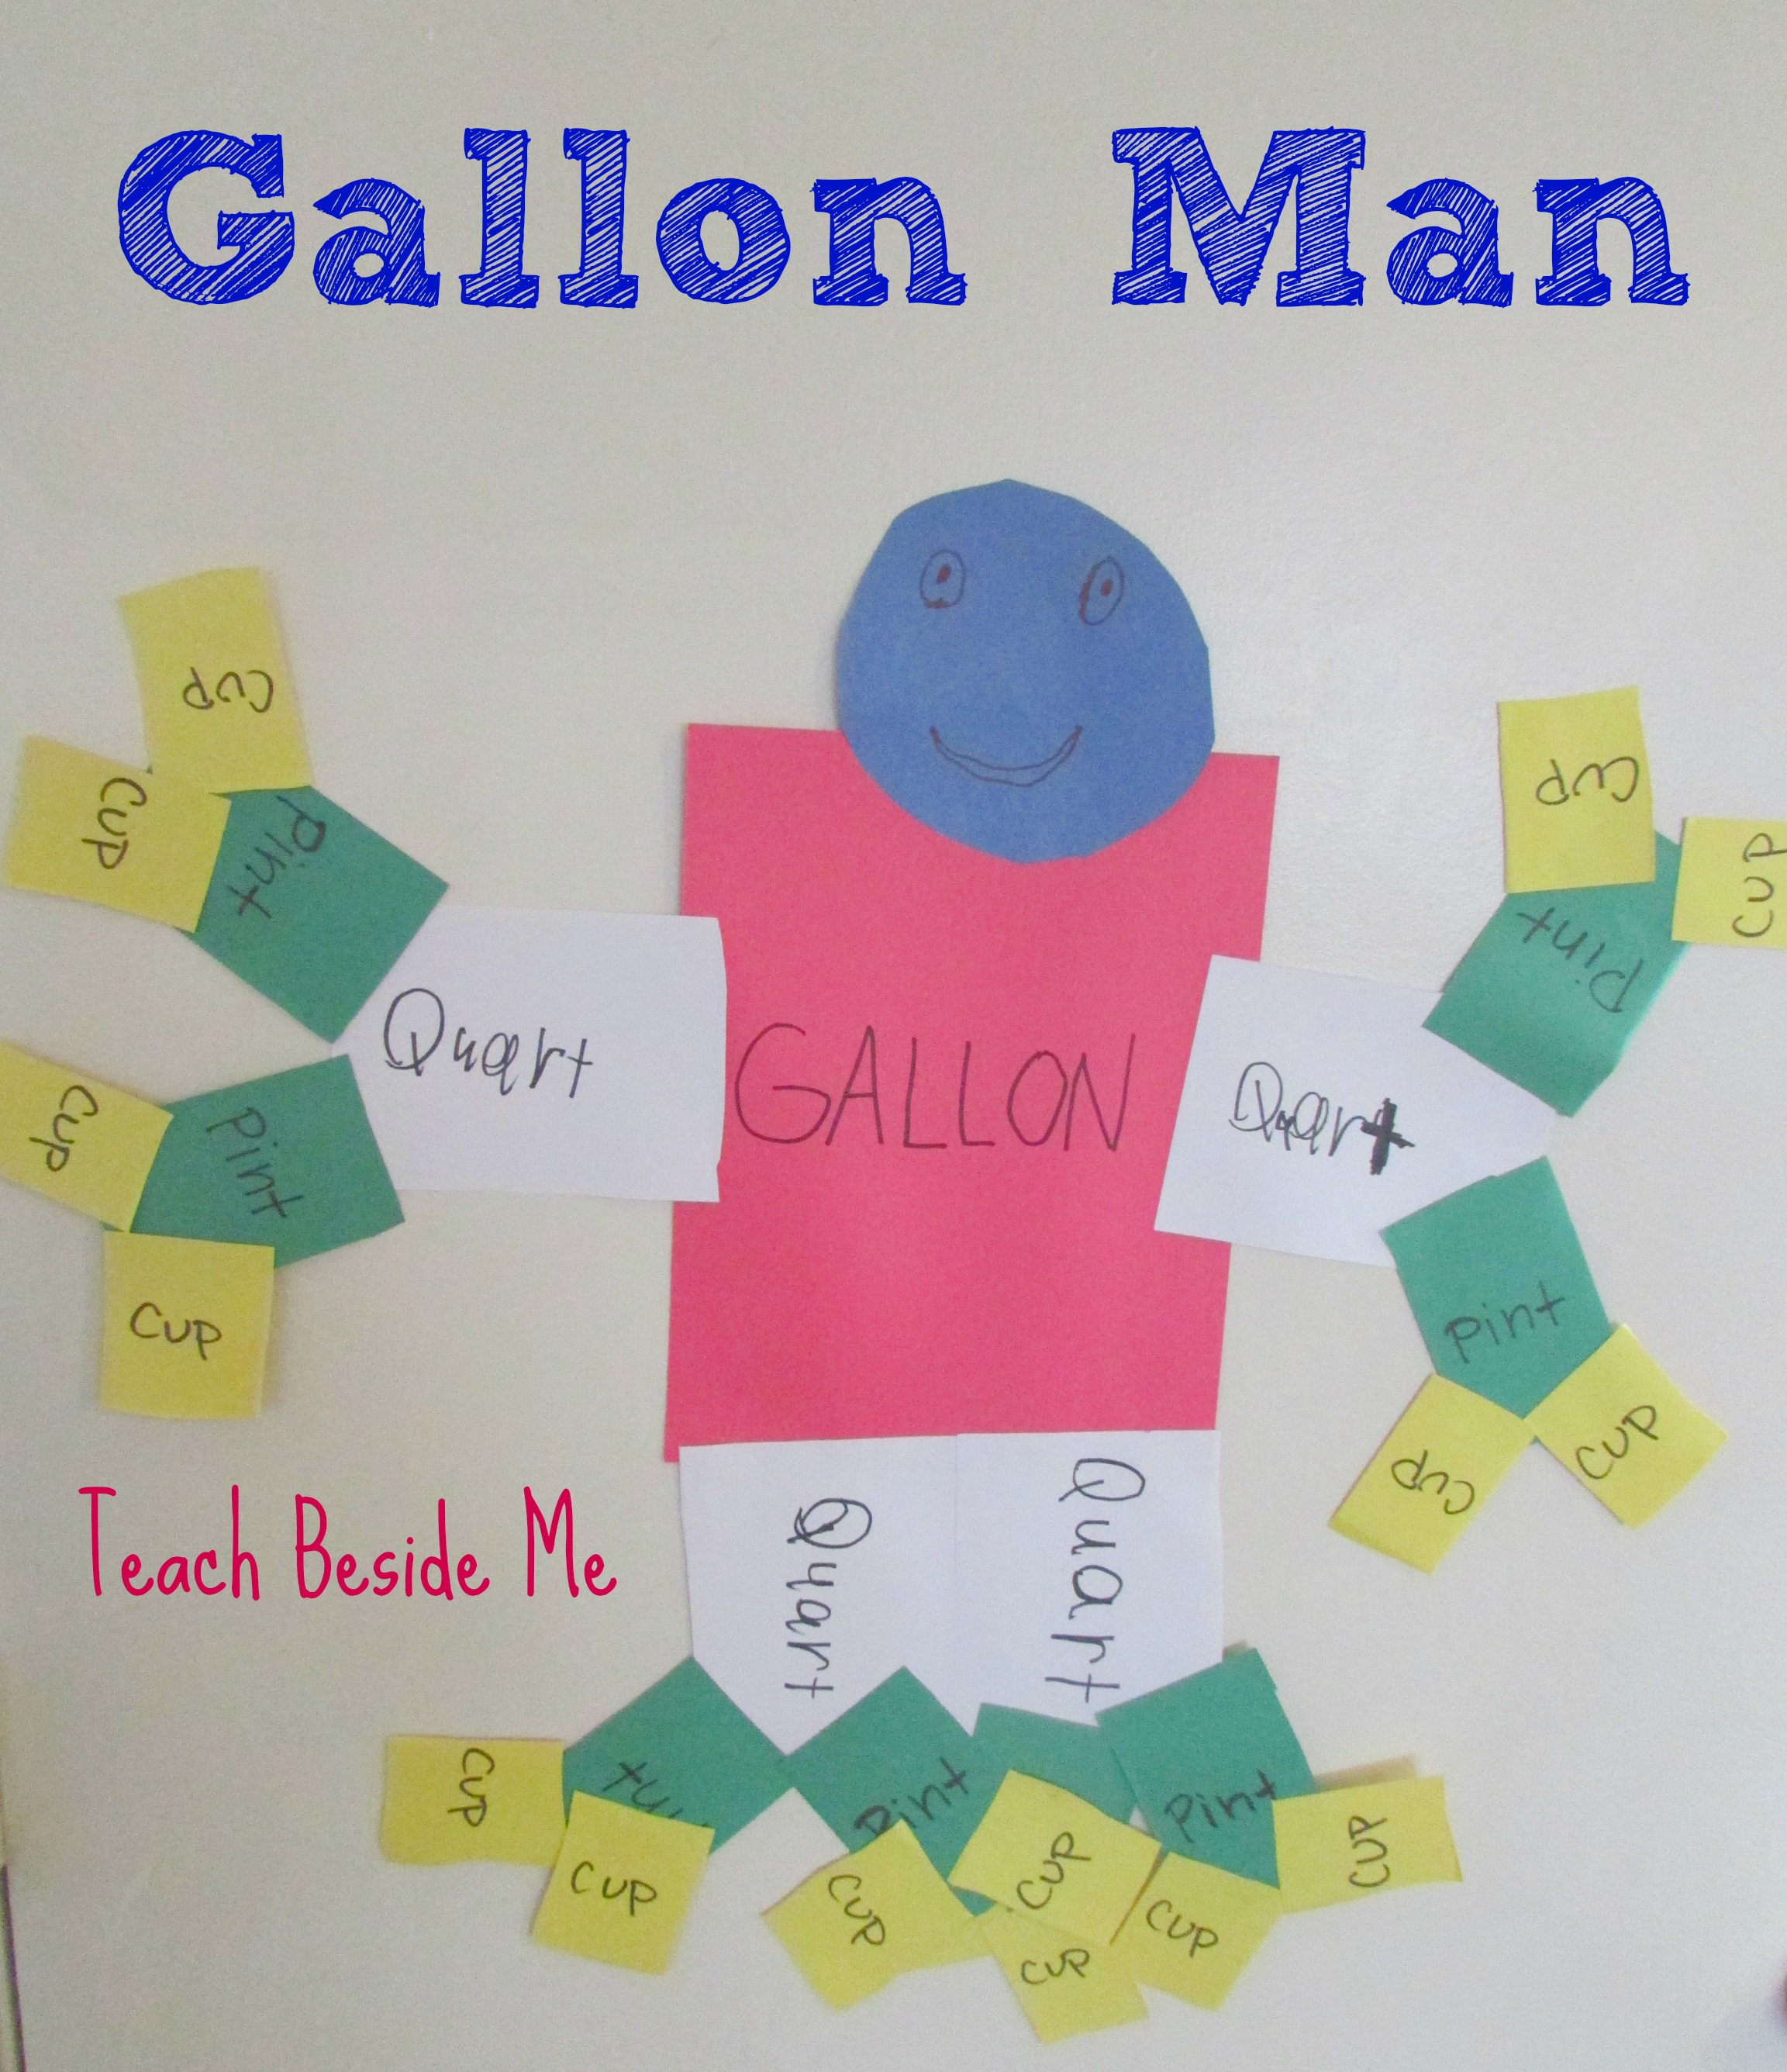 image relating to Gallon Man Printable identified as How Several Quarts inside a Gallon? Gallon Person Practice Beside Me